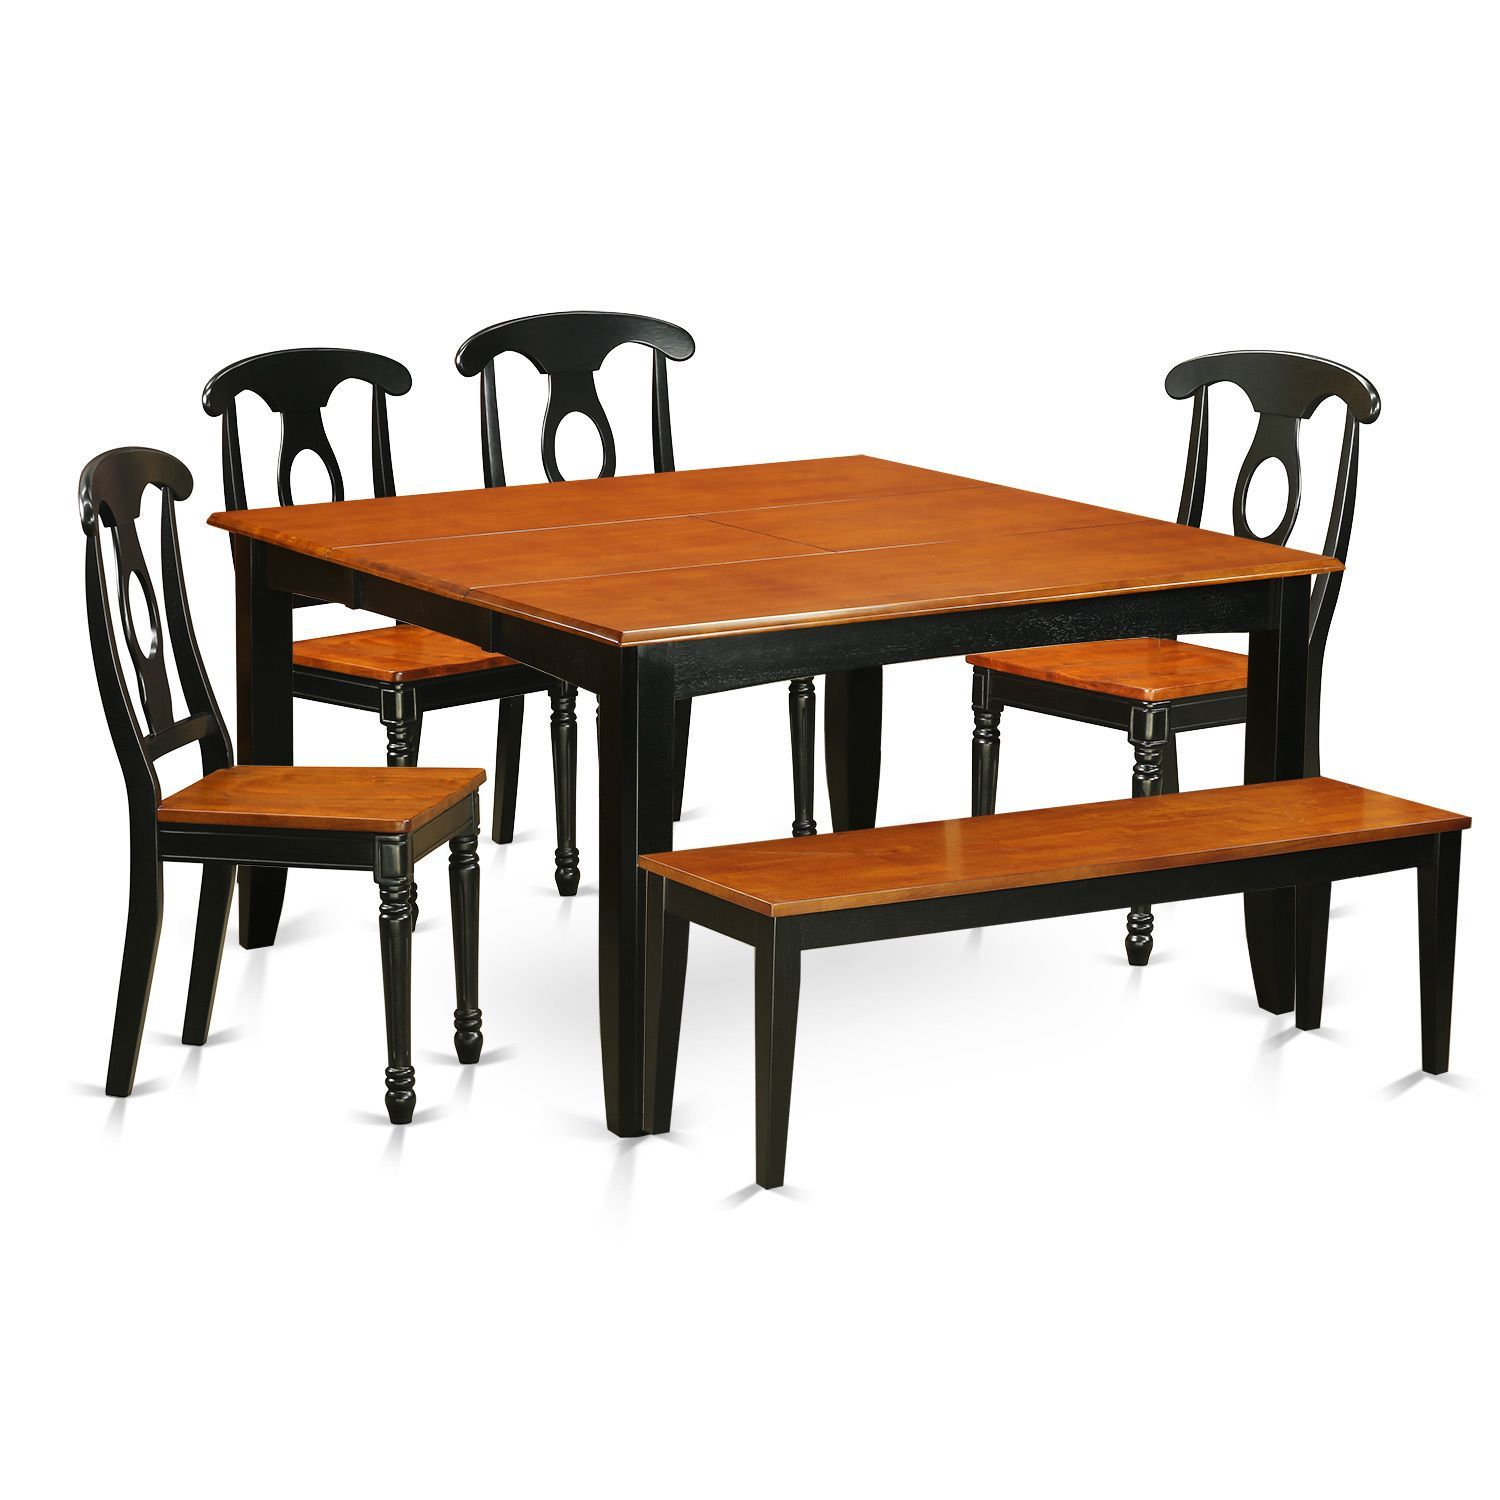 Pfkebch solid wood chair and dining bench piece dining room